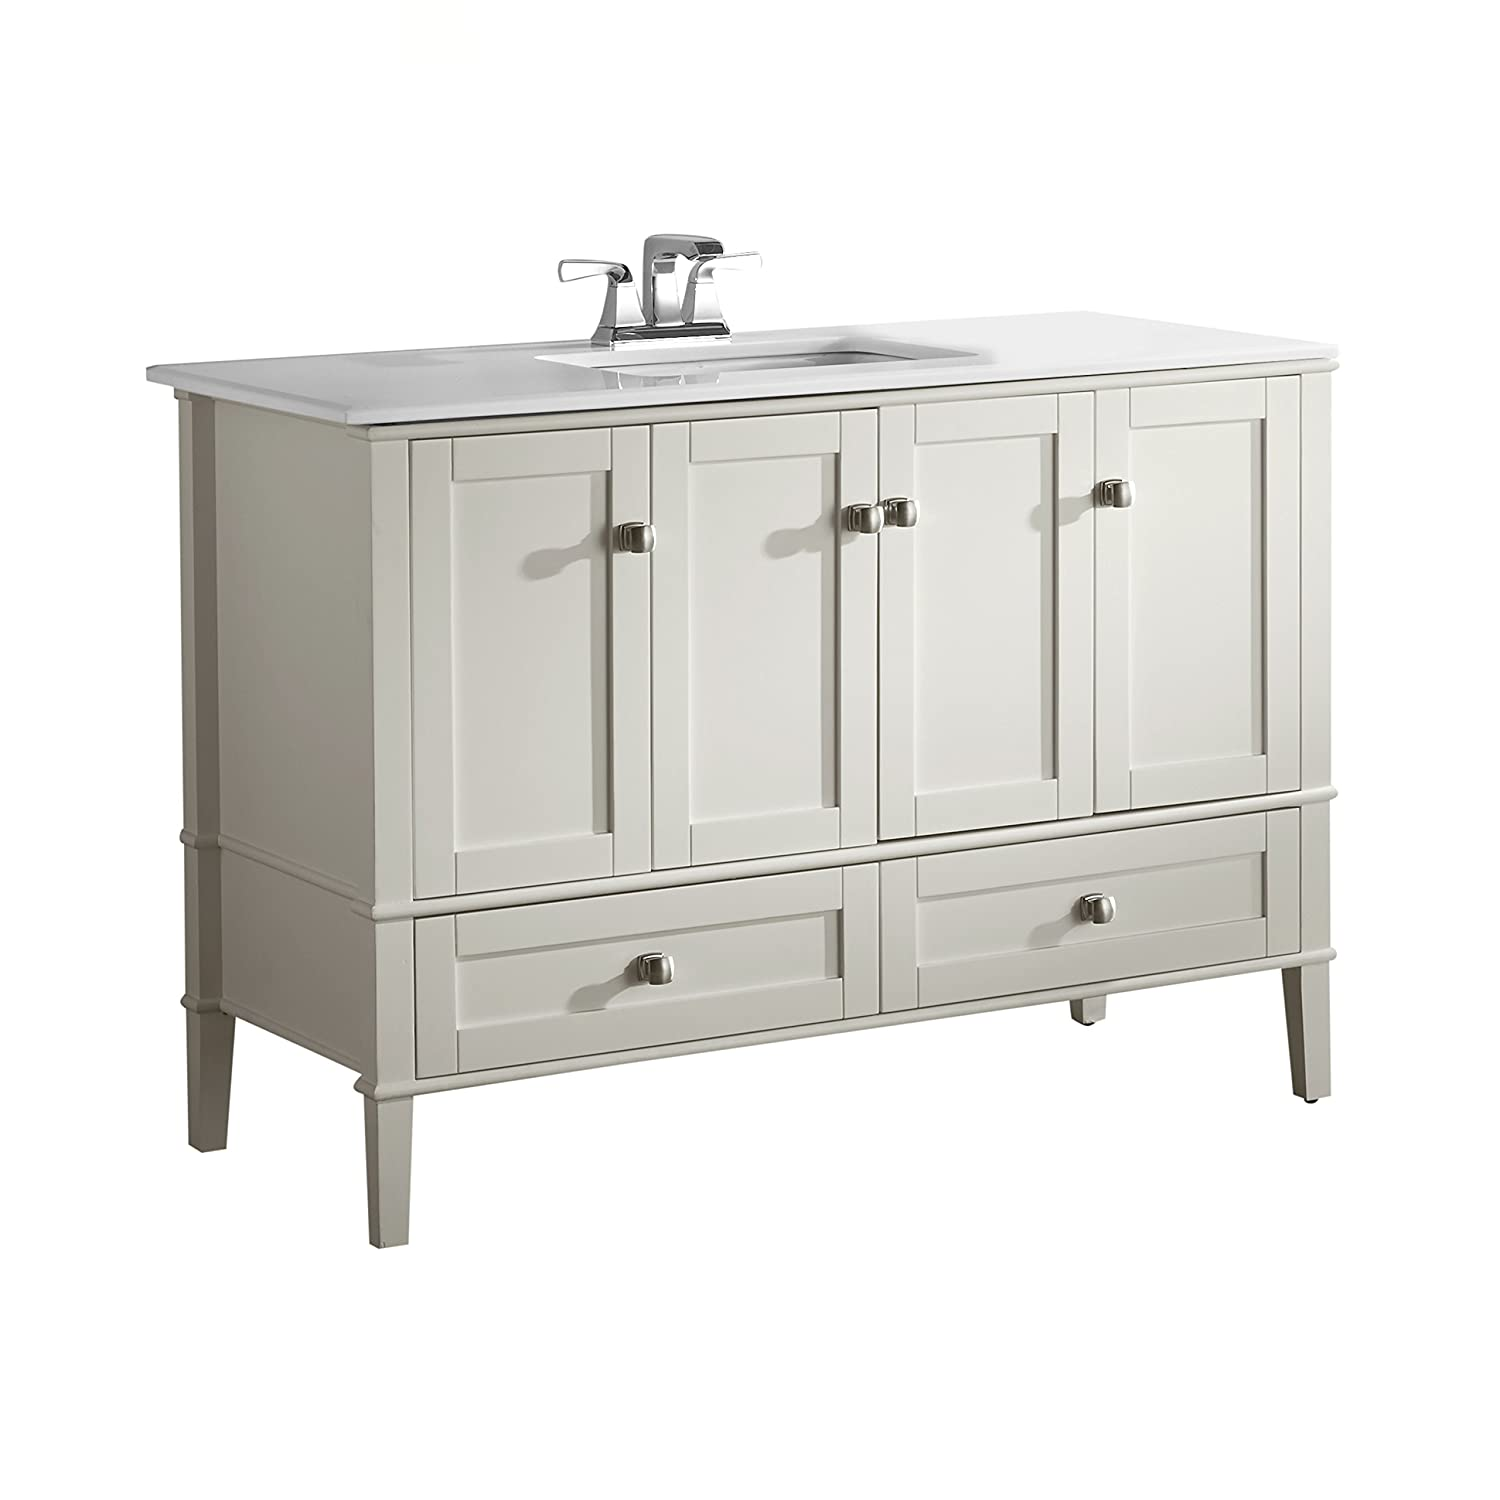 Simpli Home NLHHVA Chelsea Bath Vanity With White - Bathroom vanities 48 inch single sink